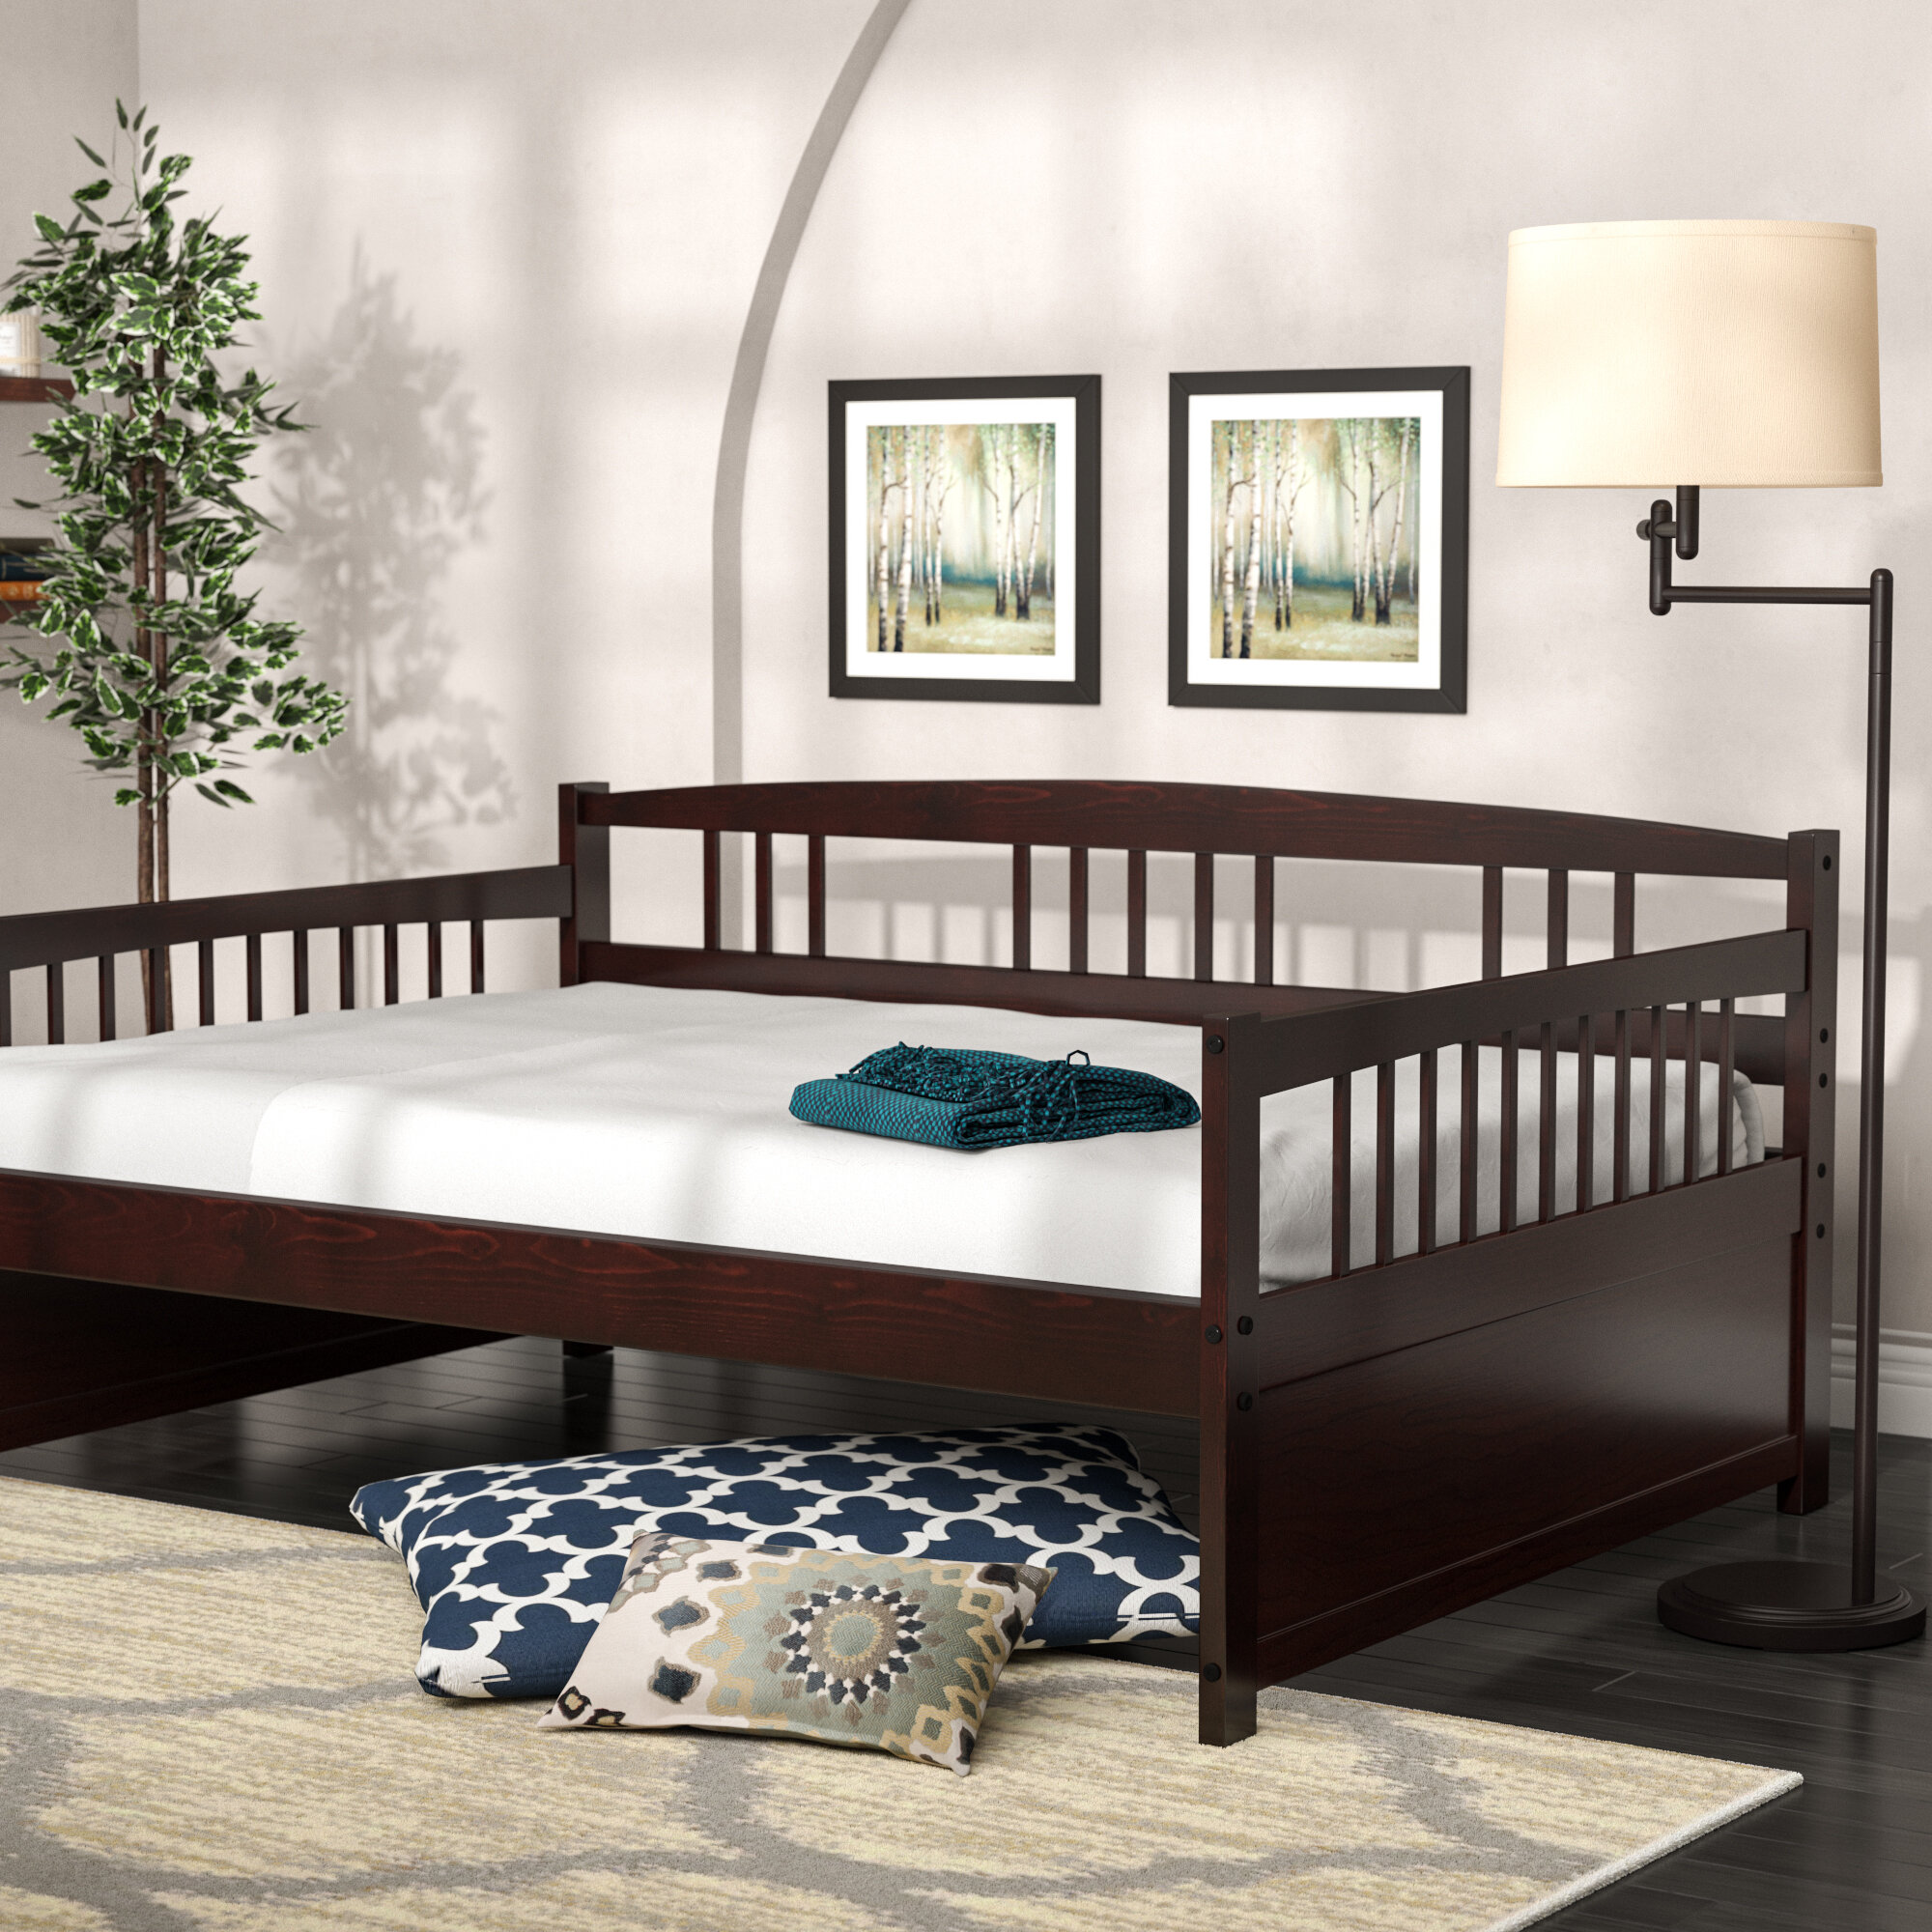 Alcott Hill Esther Full Daybed Reviews Wayfair